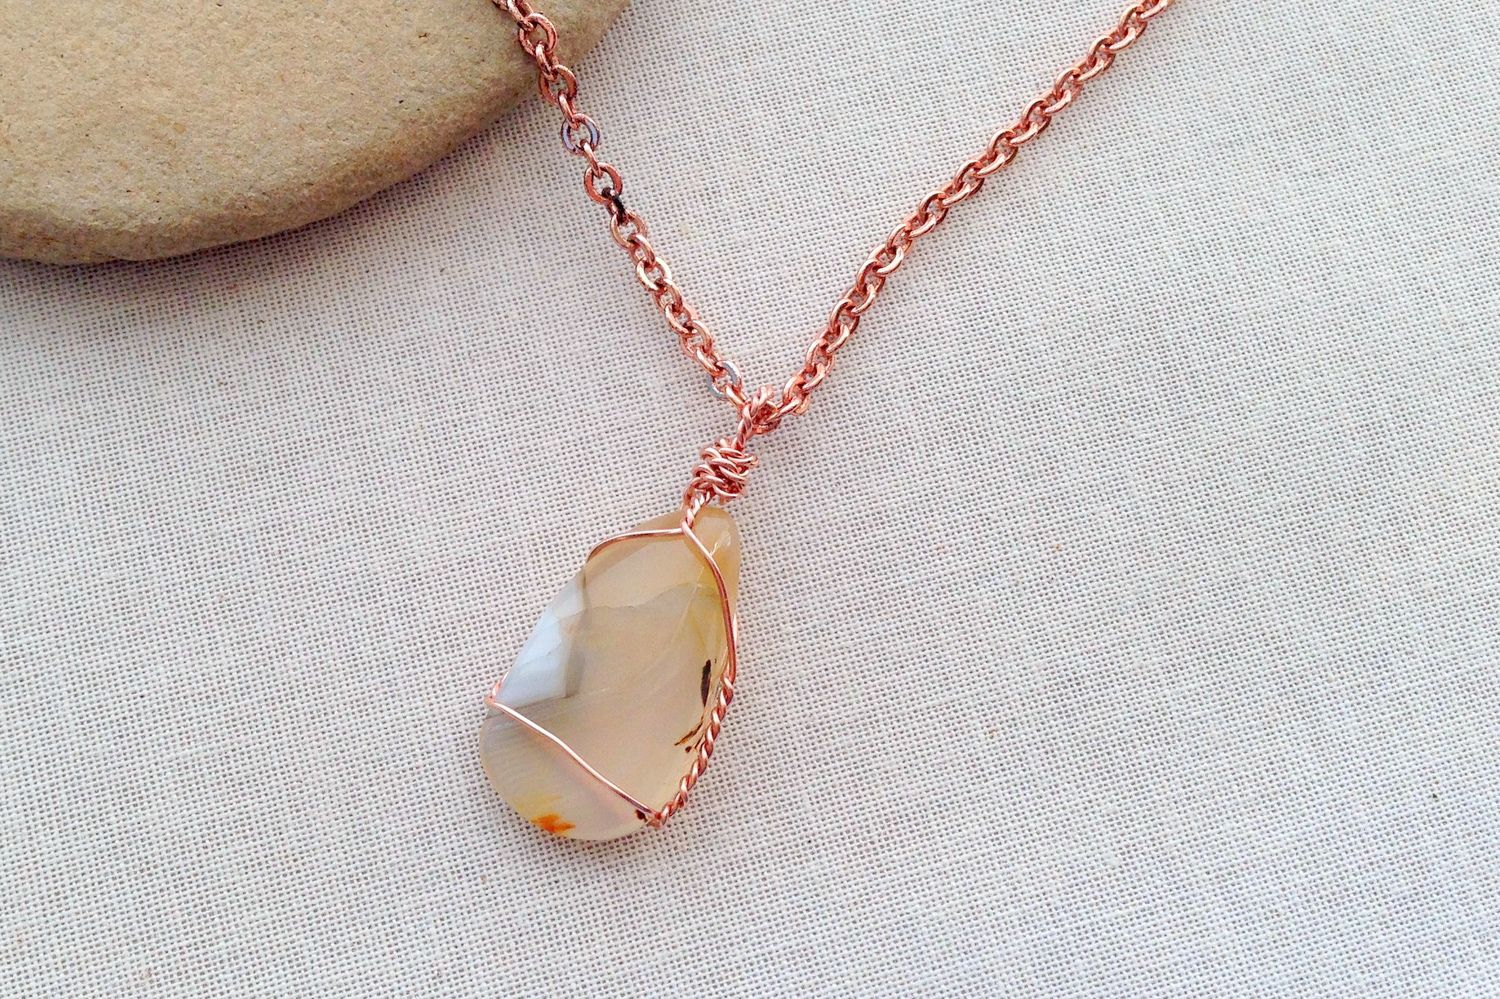 ooak necklace Agate necklace boho jewelry healing stones crystal necklace fantasy | hippie necklace brown wirewrap pendant